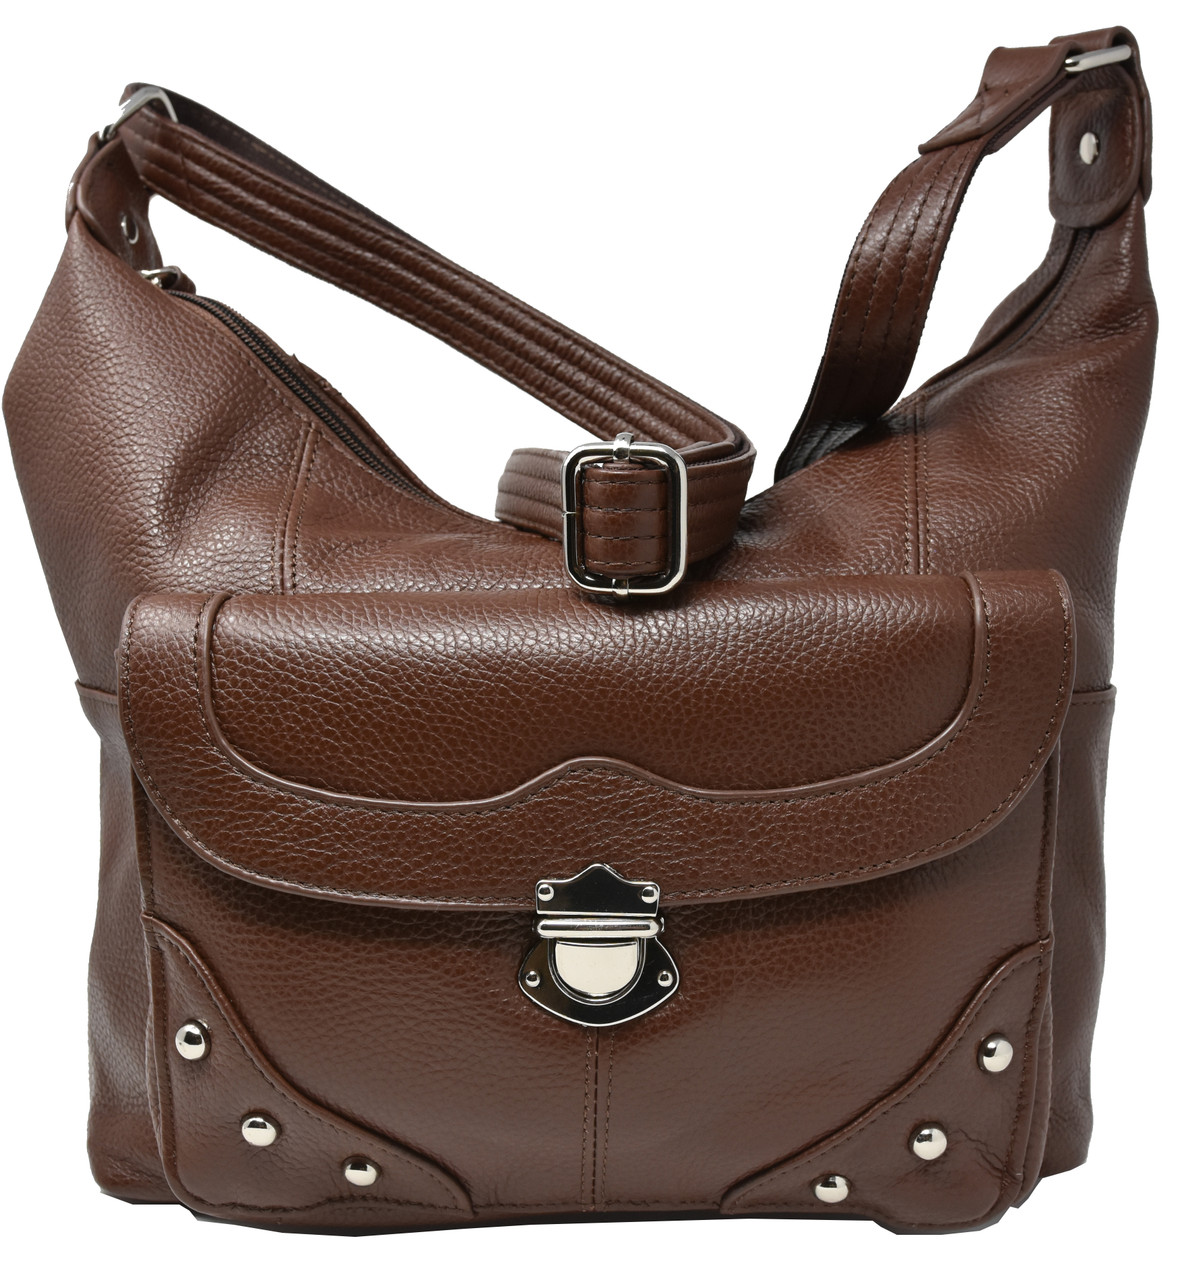 Garrison Grip Brown Crossbody or Shoulder Carry Leather Locking Concealment Purse - CCW Concealed Carry Gun Bag